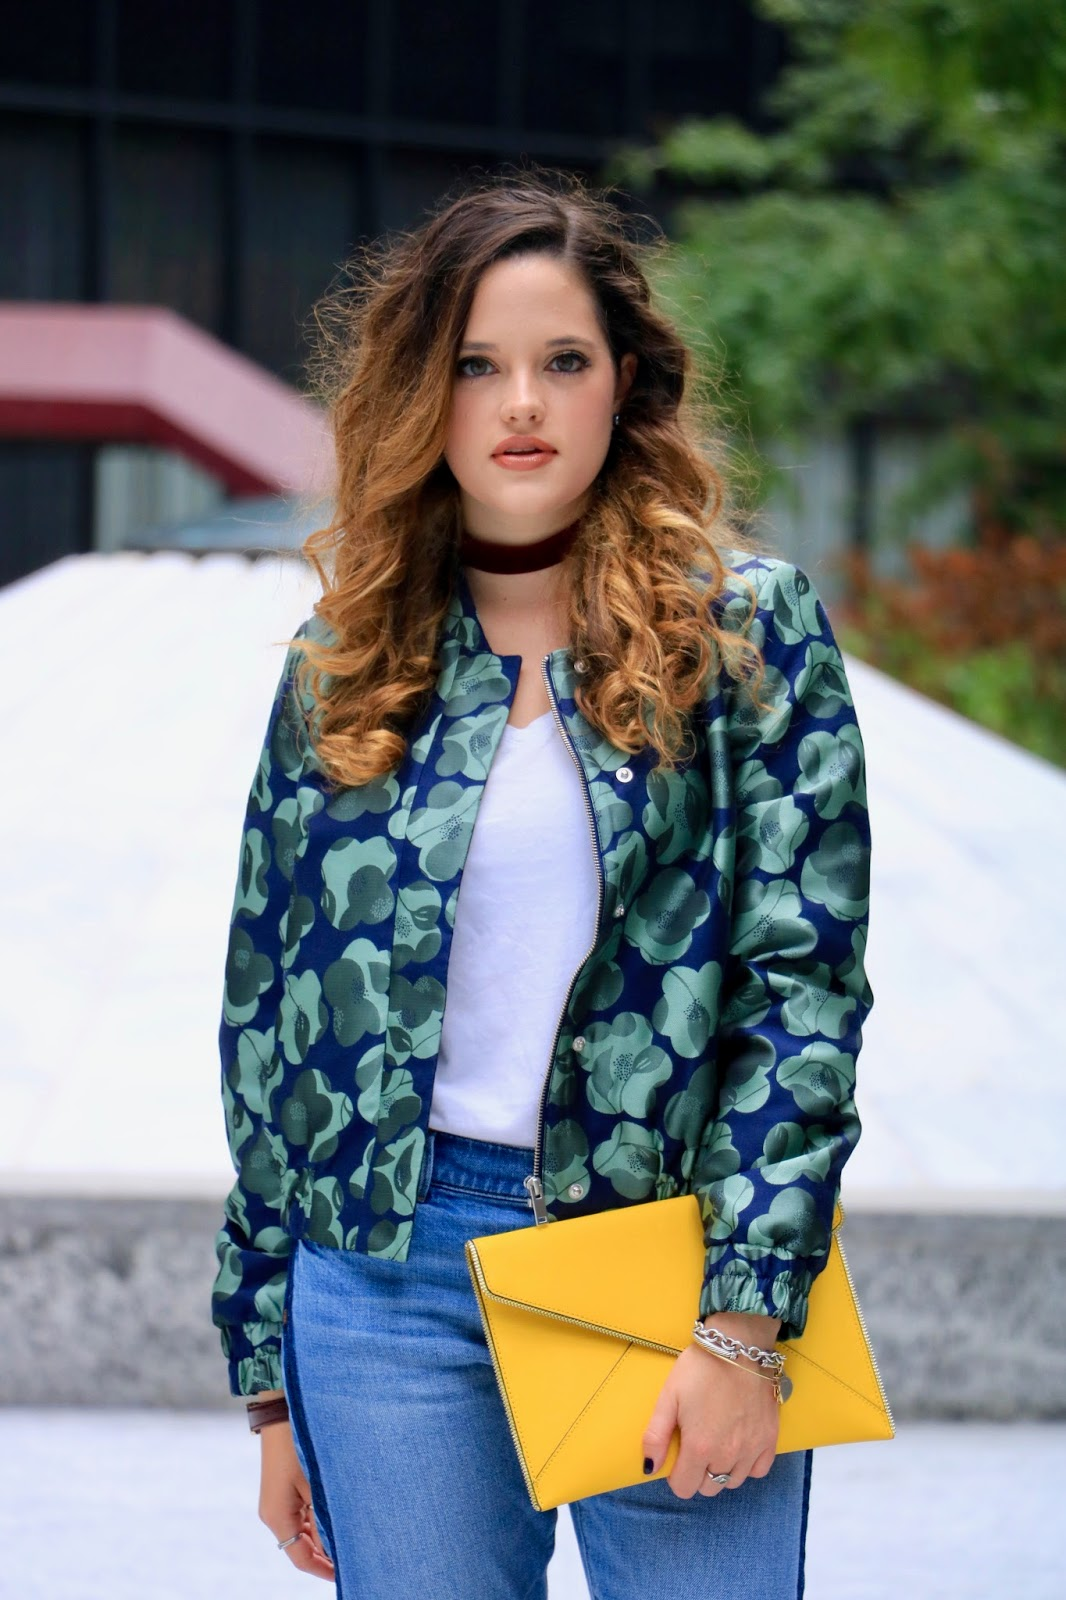 NYC Fashion blogger Kathleen Harper wearing a printed bomber jacket